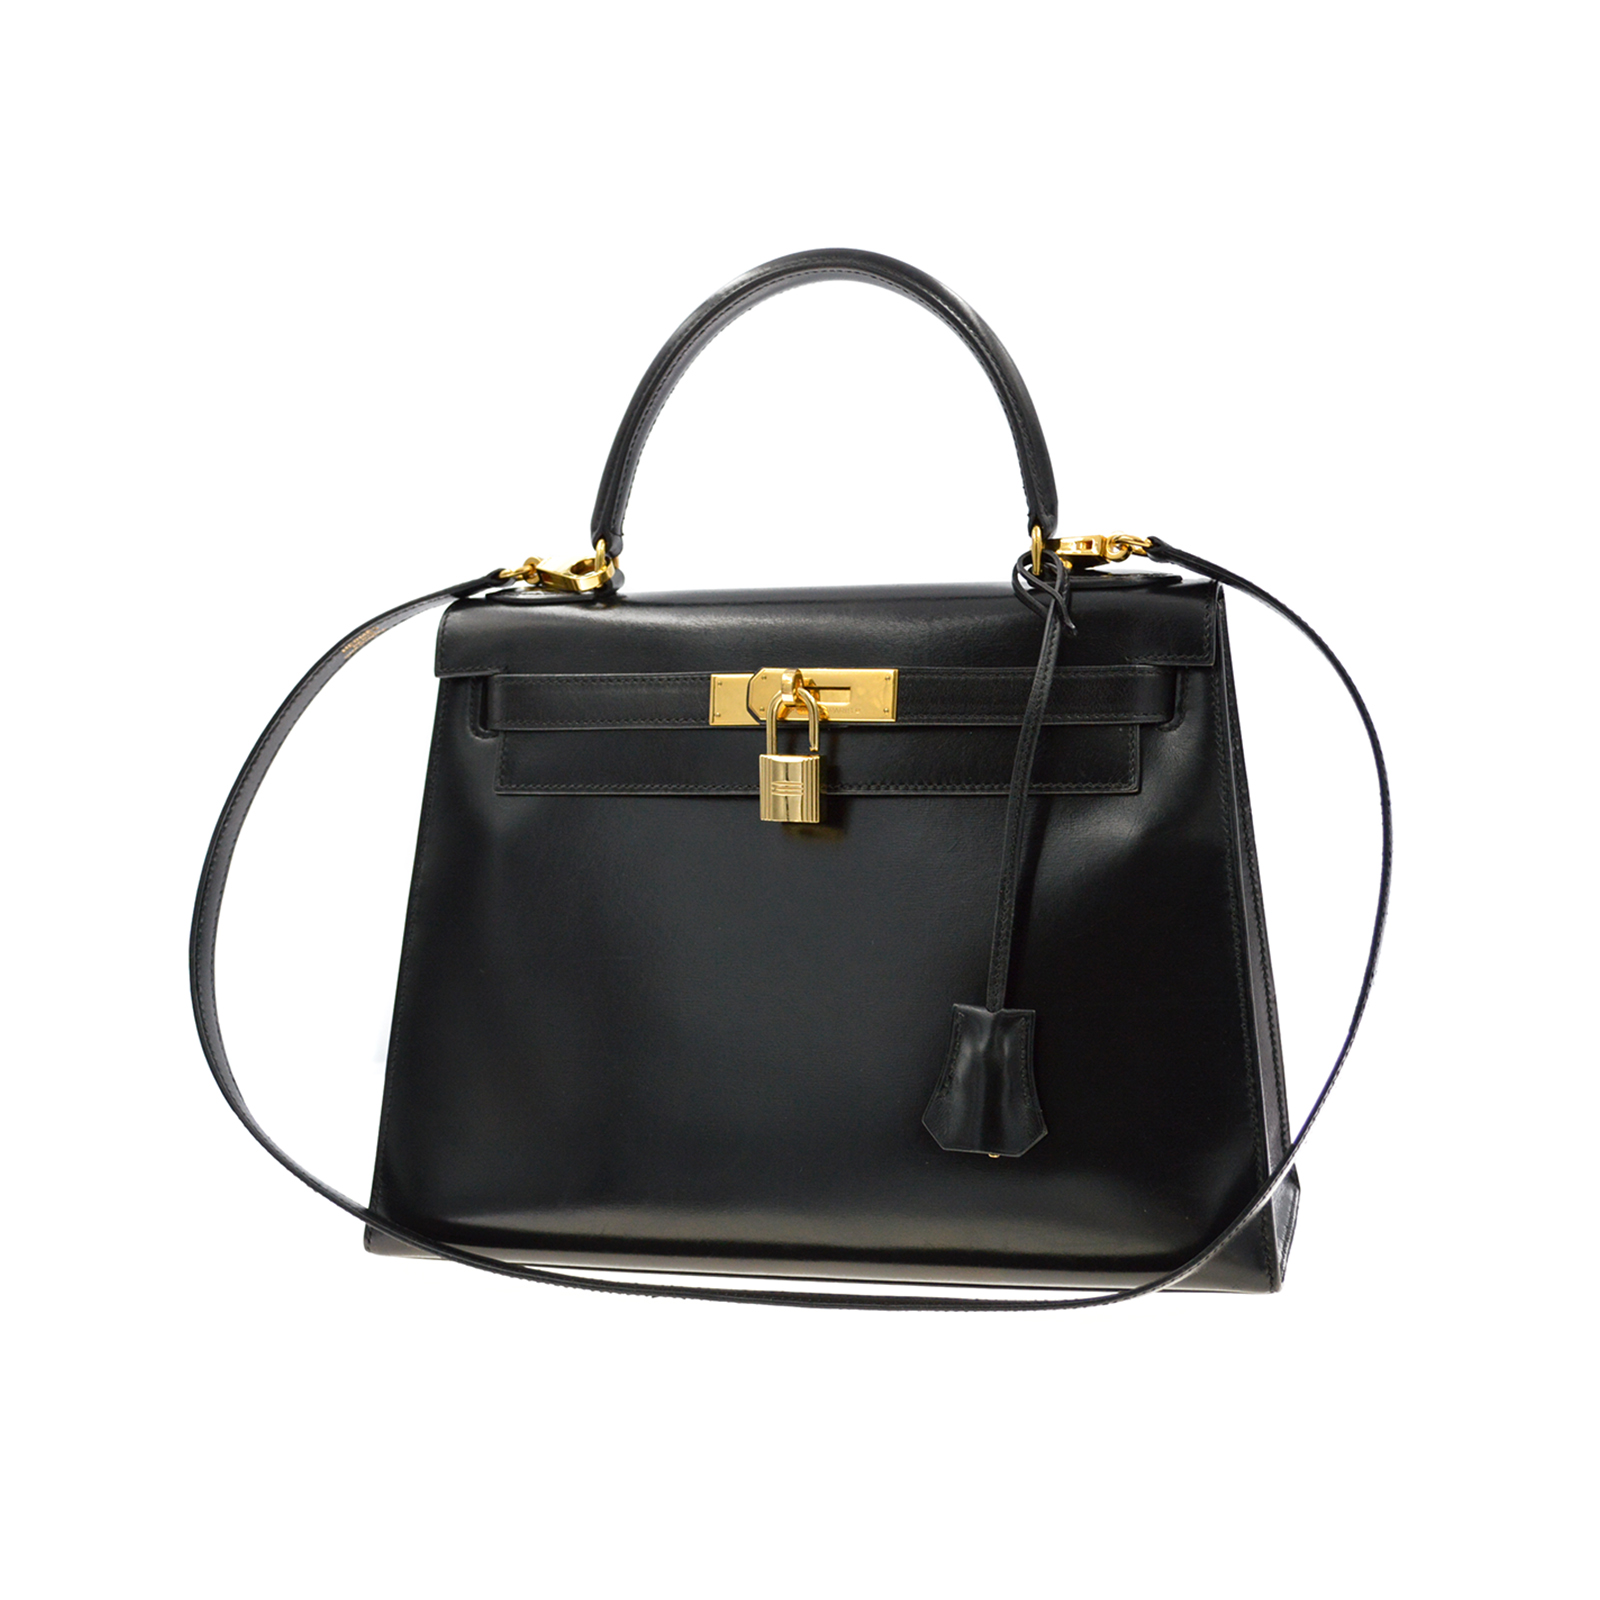 HERMES Kelly 28 Bag Black Box Sellier HM190145